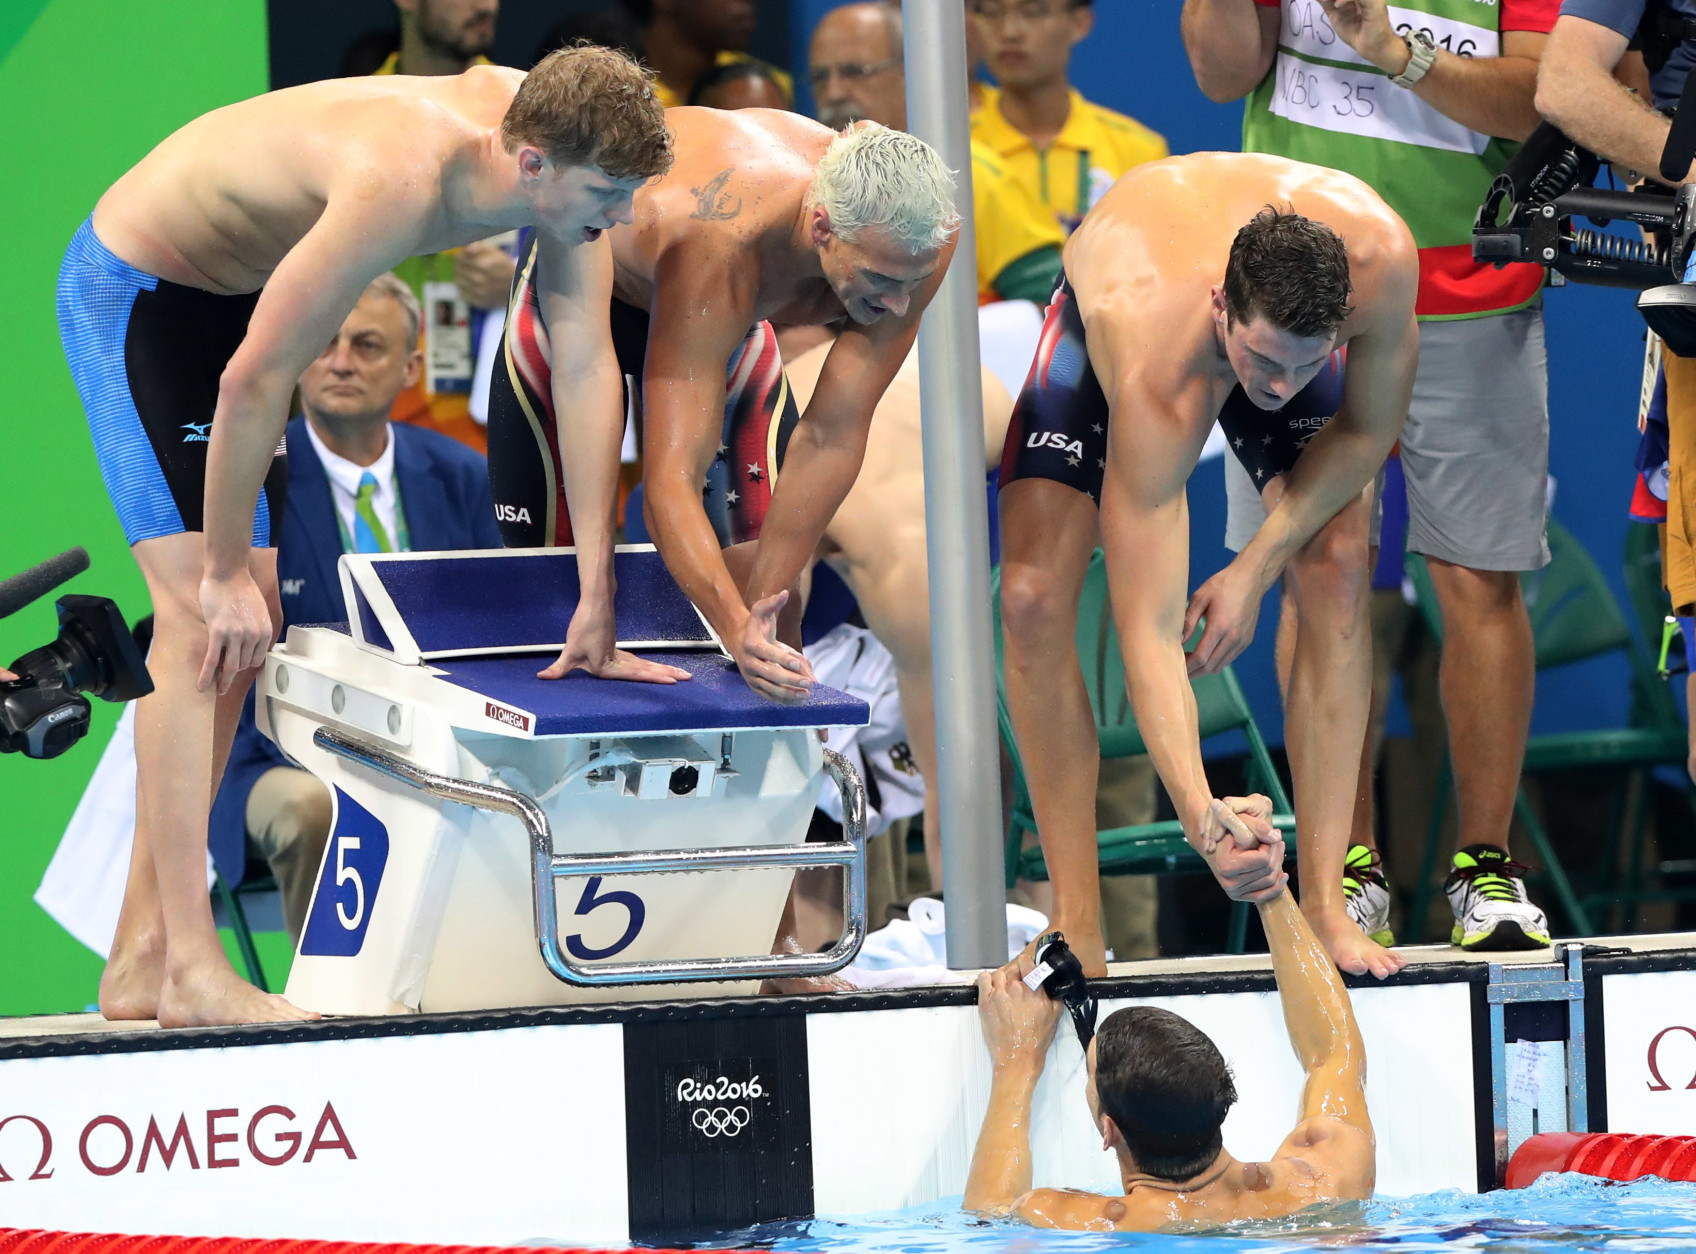 United States' Townley Haas, left, Ryan Lochte, center, and Conor Dwyer celebrate as Michael Phelps, in the pool, finishes to win the gold medal in the men's 4x200-meter freestyle final during the swimming competitions at the 2016 Summer Olympics, Tuesday, Aug. 9, 2016, in Rio de Janeiro, Brazil. (AP Photo/Lee Jin-man)